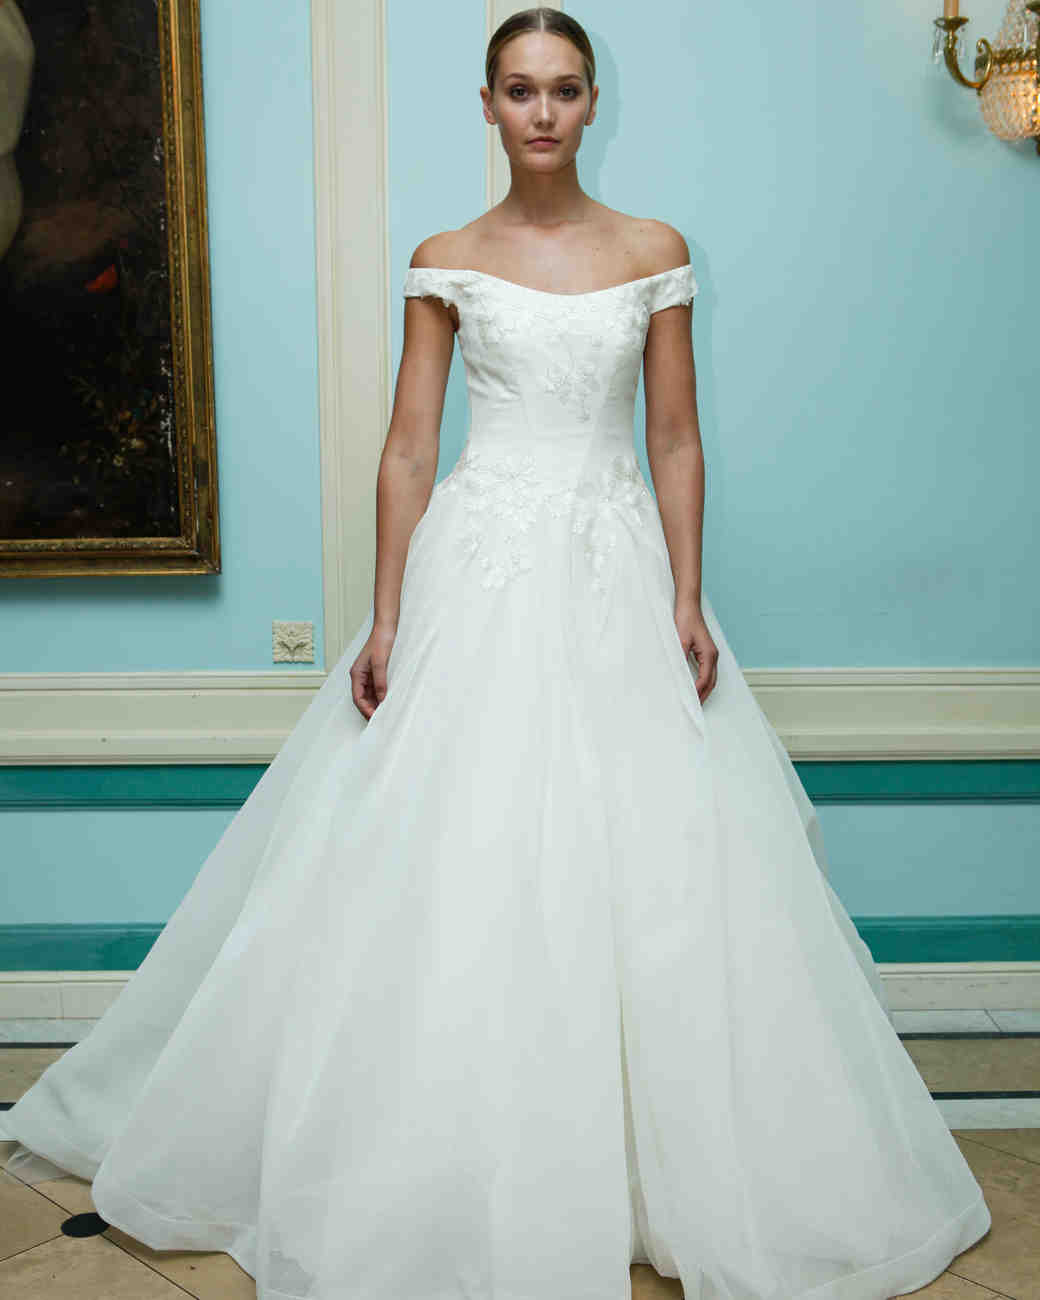 Fancy Carolyn Bessette Wedding Gown Image Collection - All Wedding ...